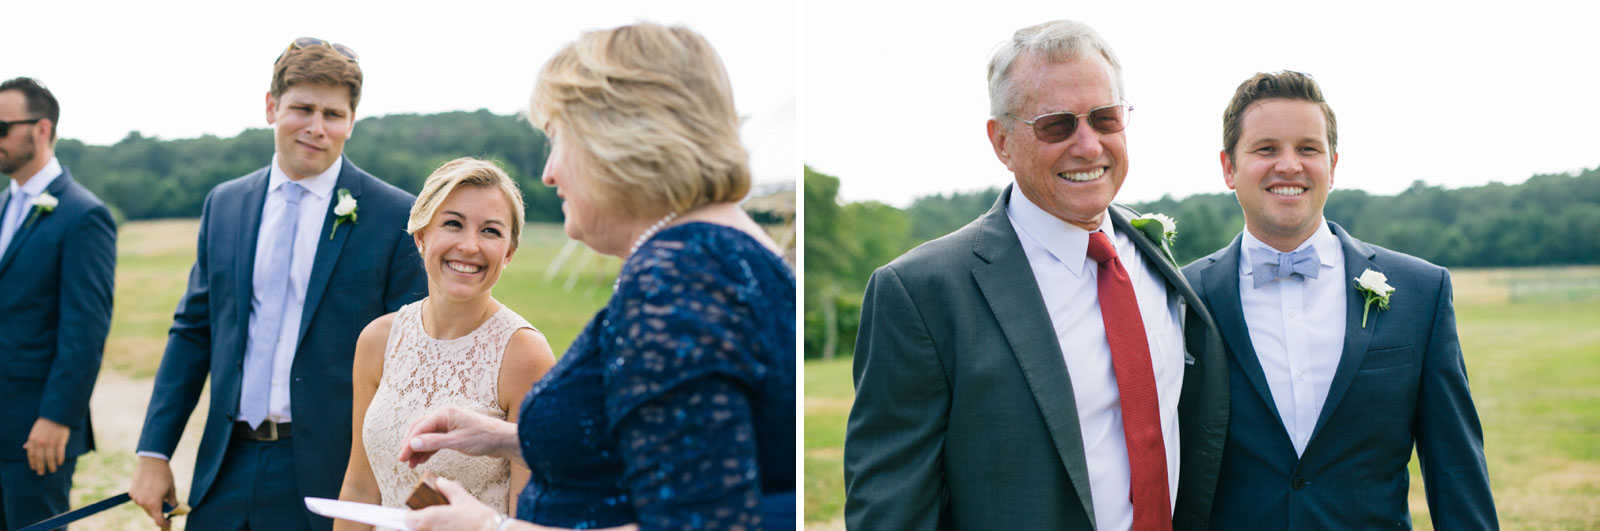 Candids of family hanging out during formal portraits before outdoor summer wedding ceremony.